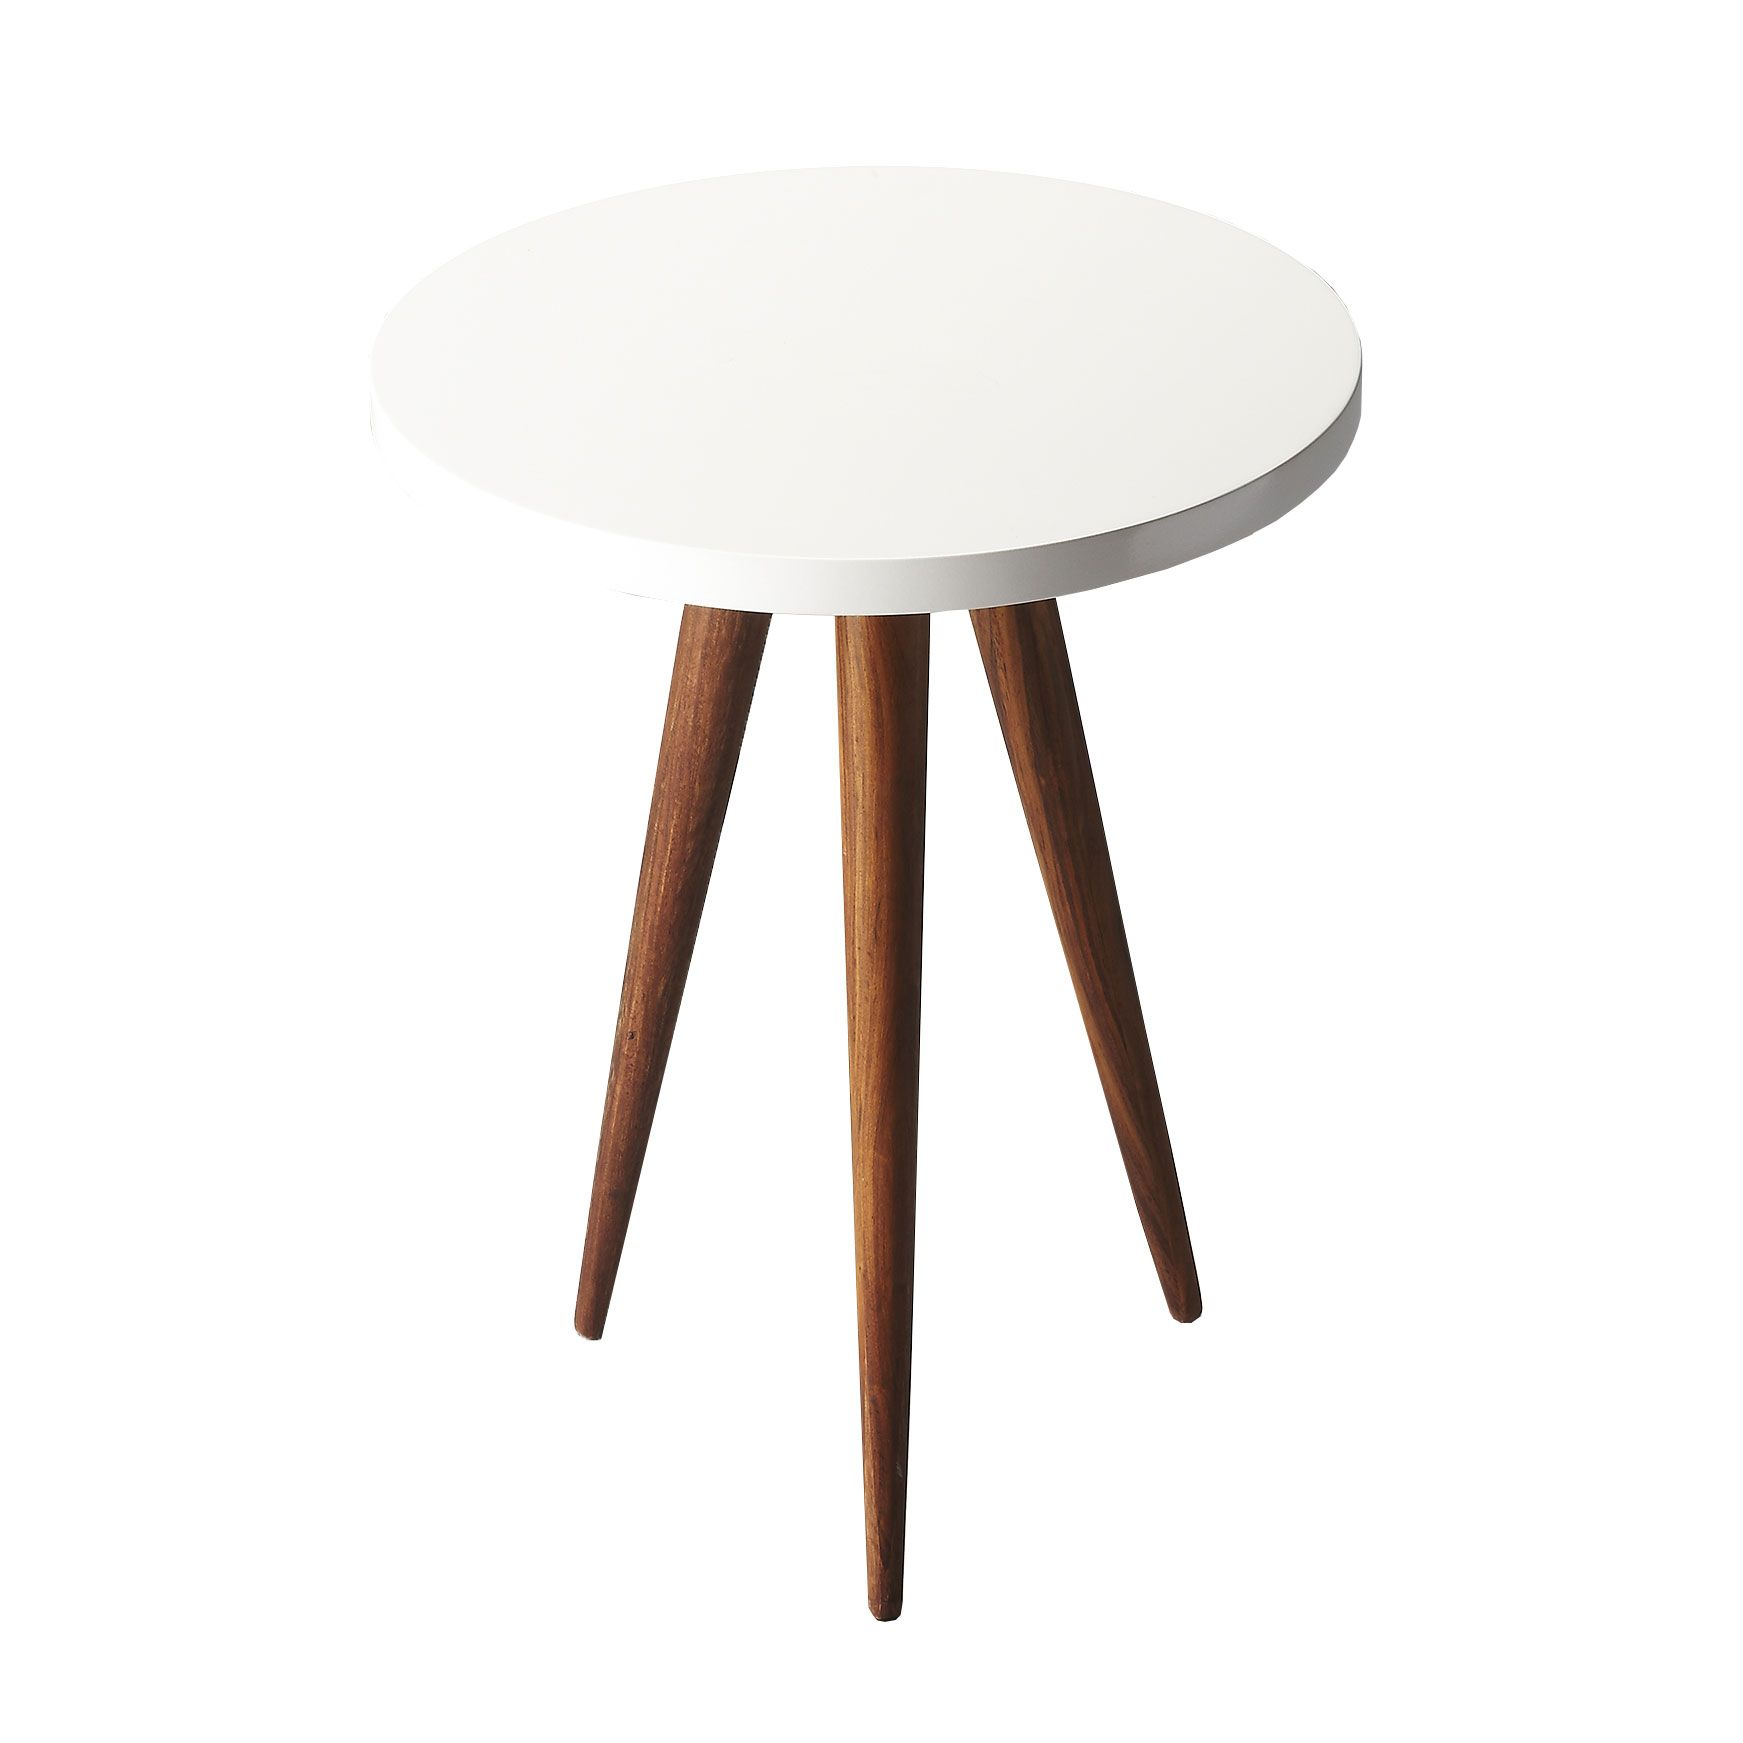 Strongly Tapered, Deep Wood Legs Give This Mid Centuryu2013inspired Table A  Slightly